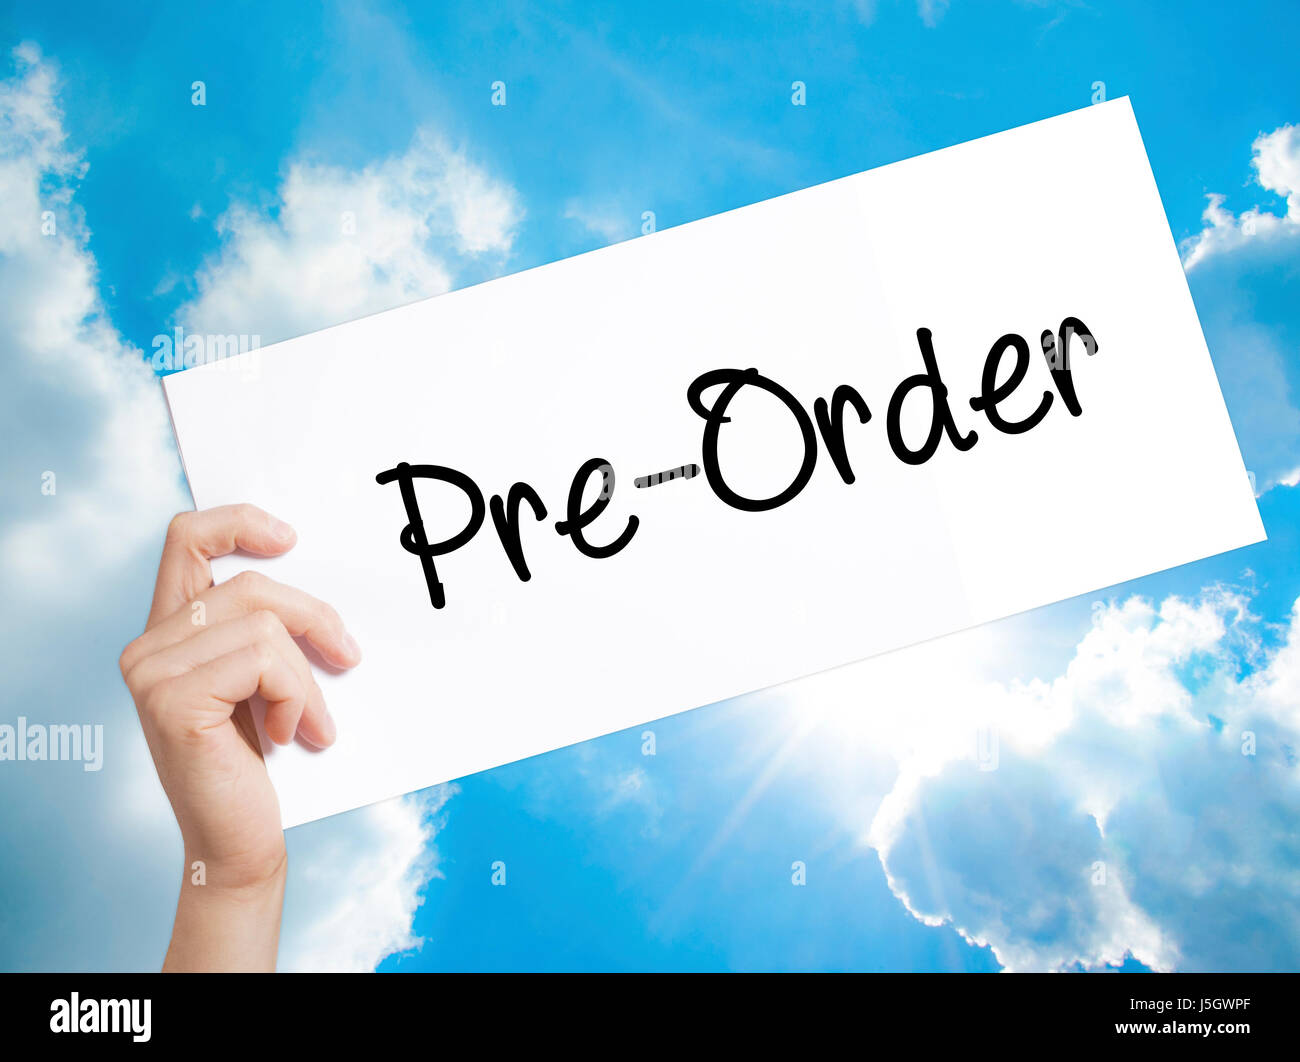 Pre-Order  Sign on white paper. Man Hand Holding Paper with text. Isolated on sky background.  Business concept. - Stock Image